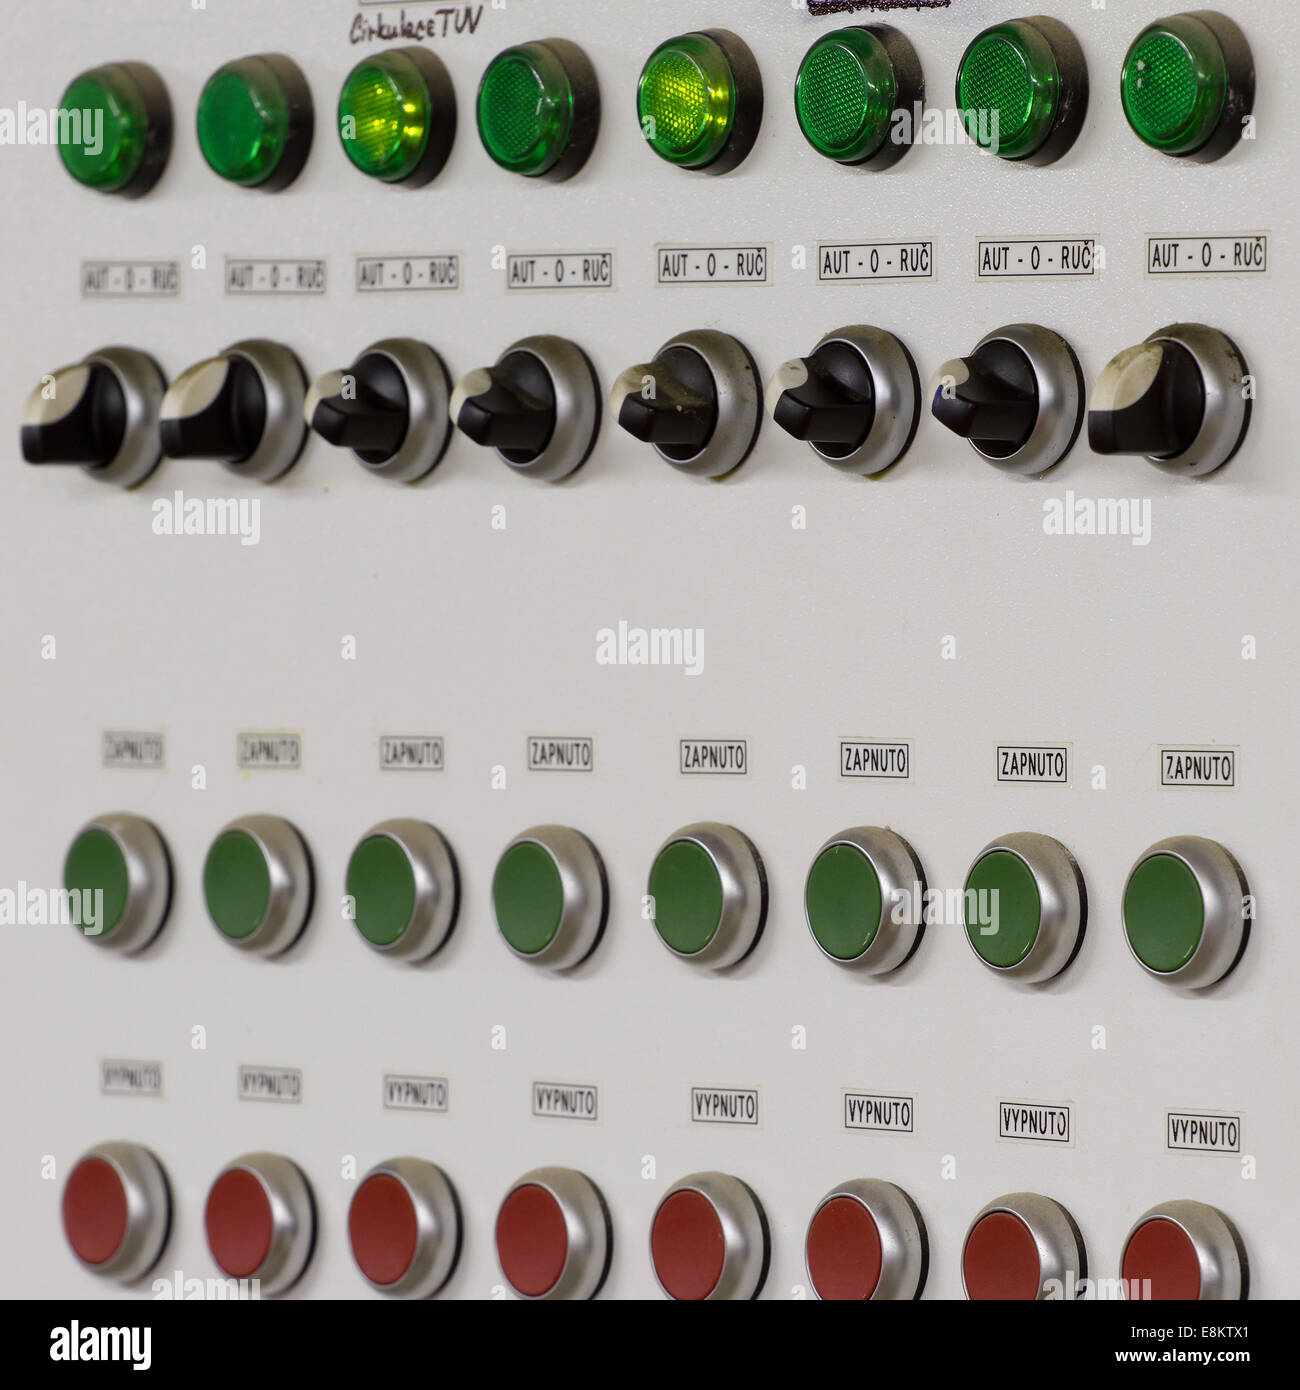 Old Control Panel Levers : Control panel with buttons and levers stock photo royalty